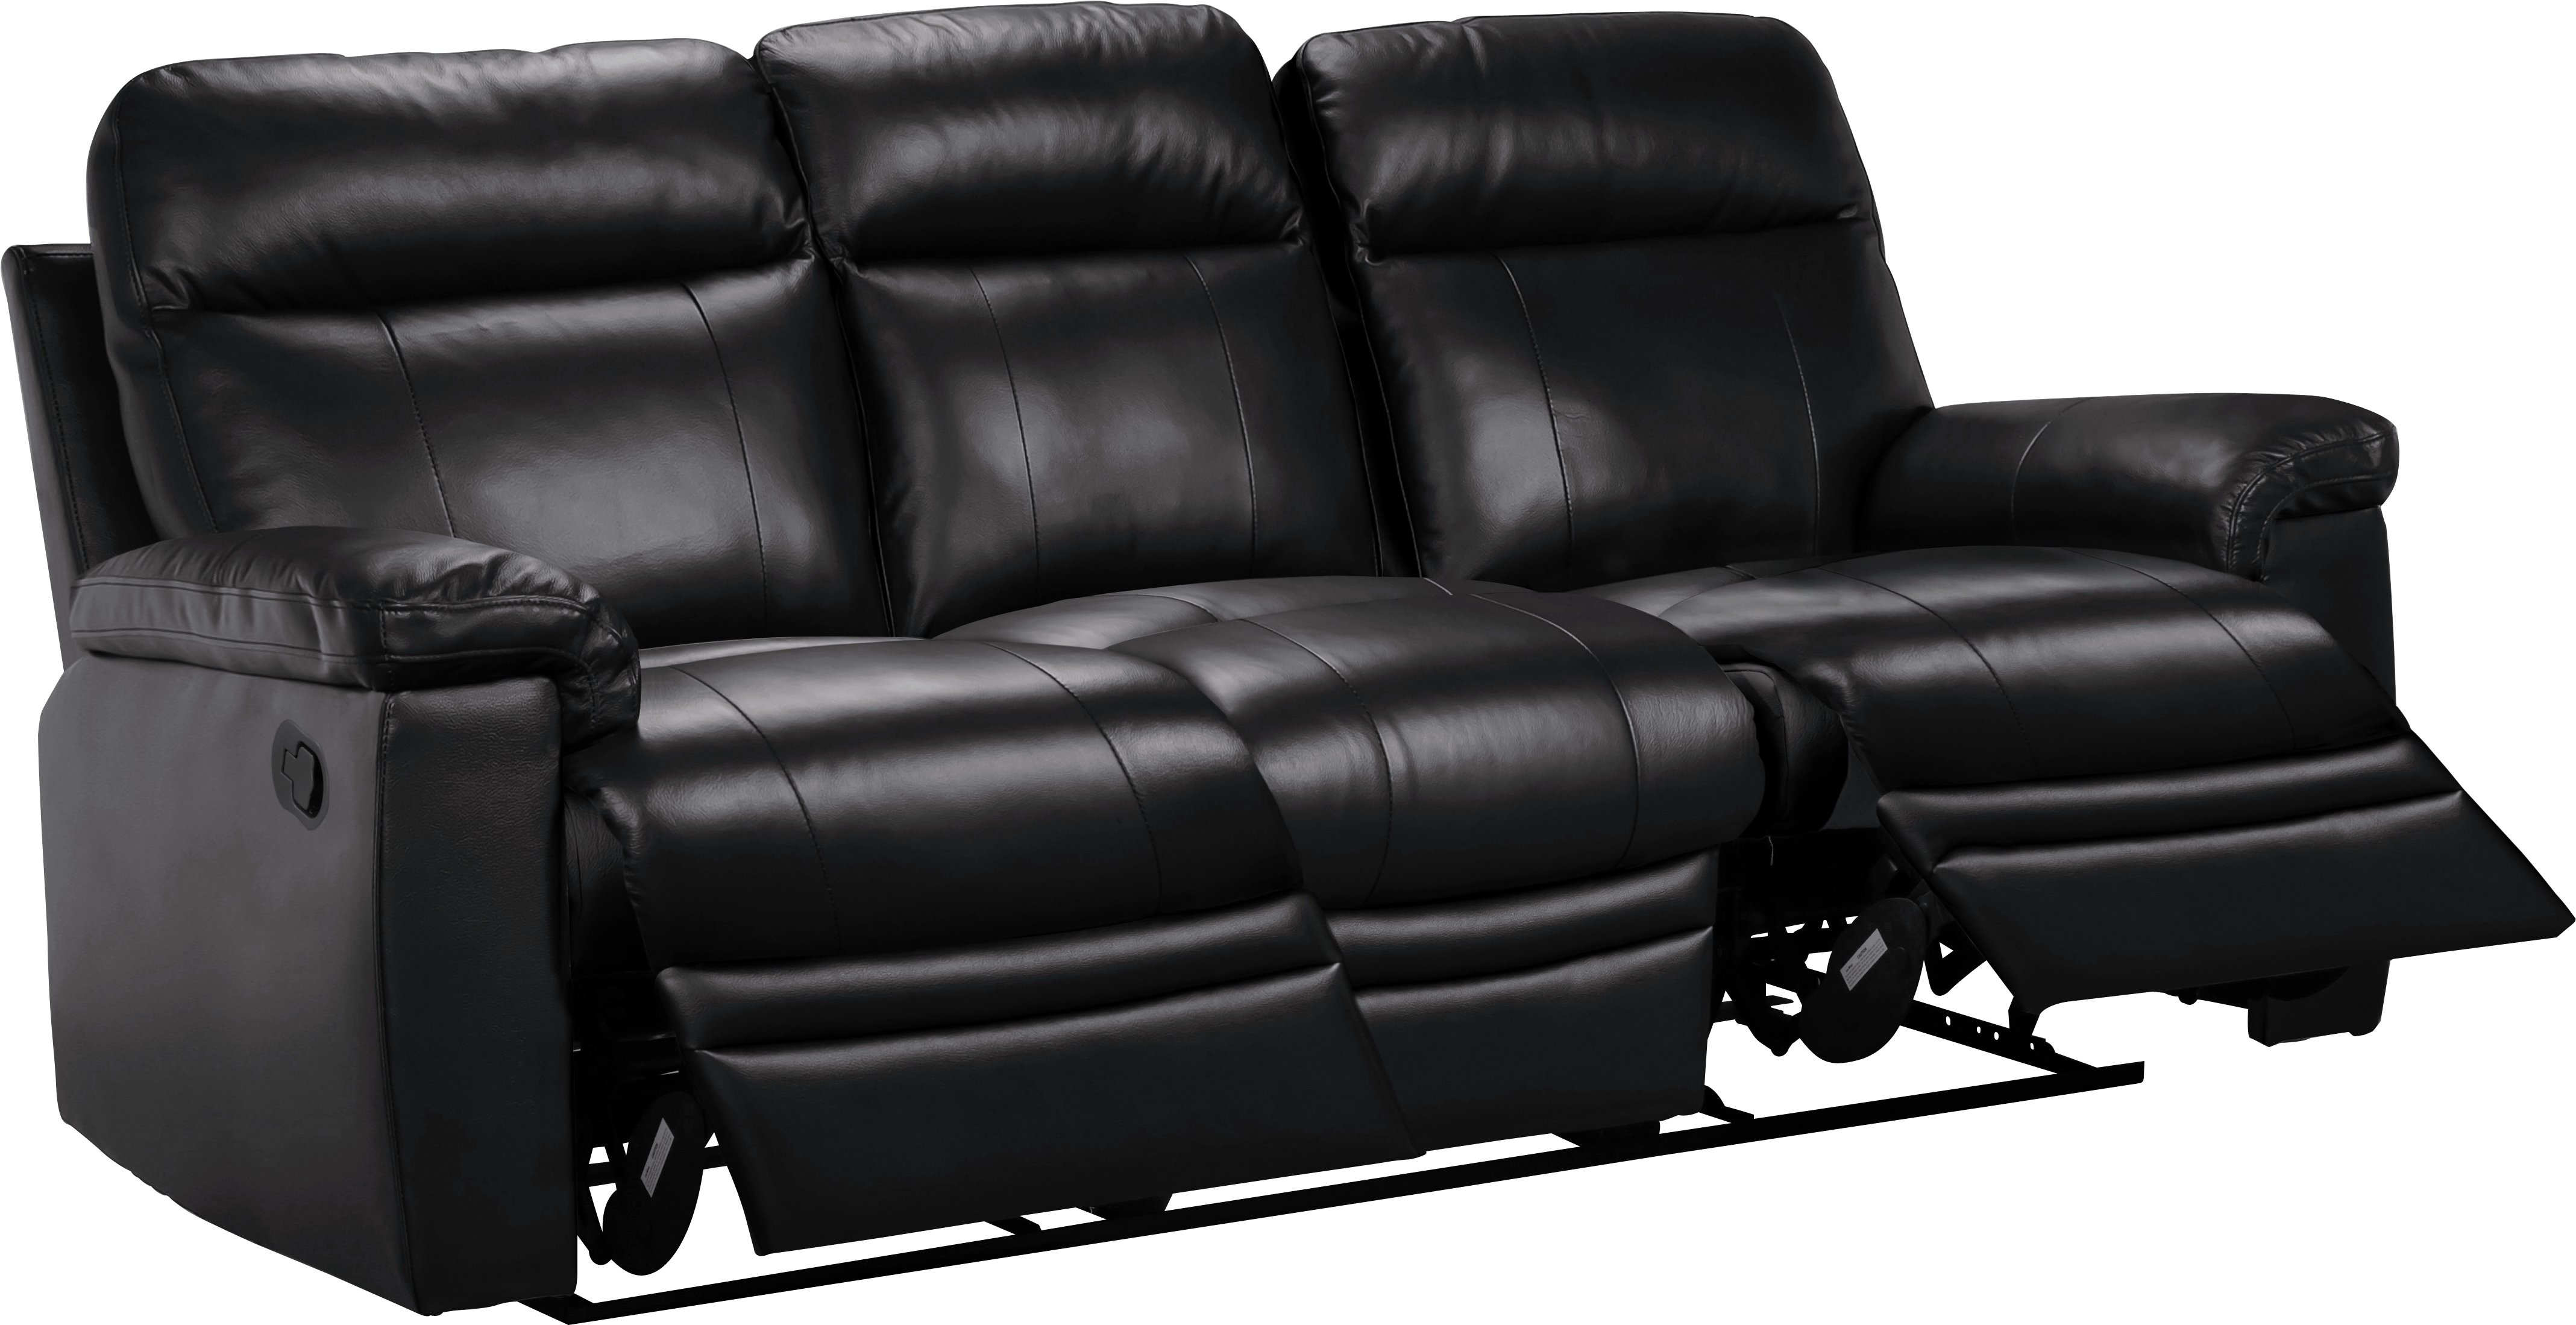 three seater recliner sofa leather argos home new paolo seater manual recliner sofa black buy tyler sofas